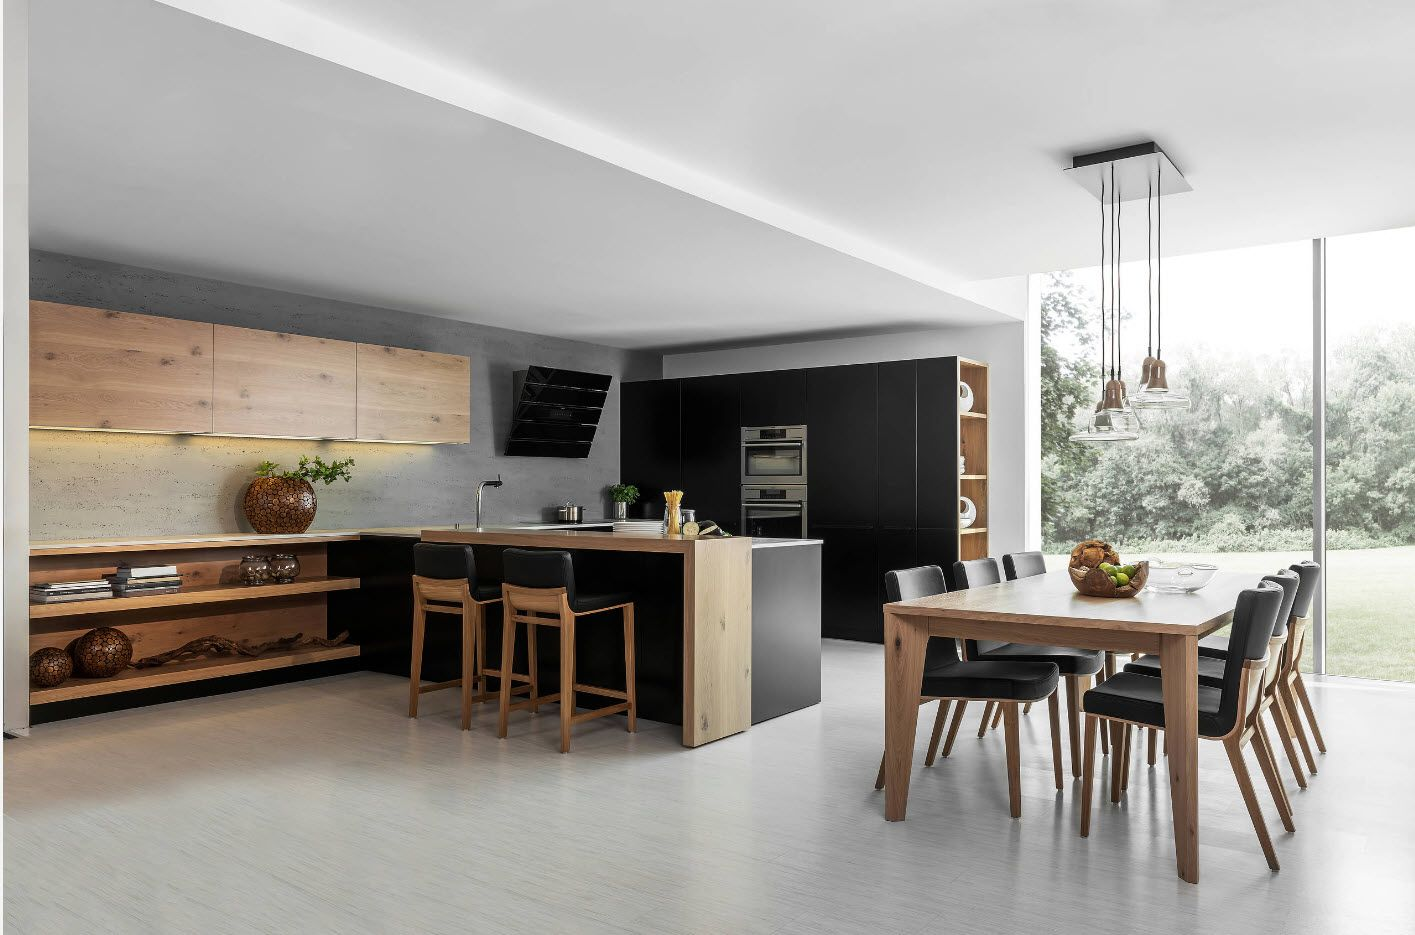 Accent wall of the kitchen set and the kitchen island in large private house